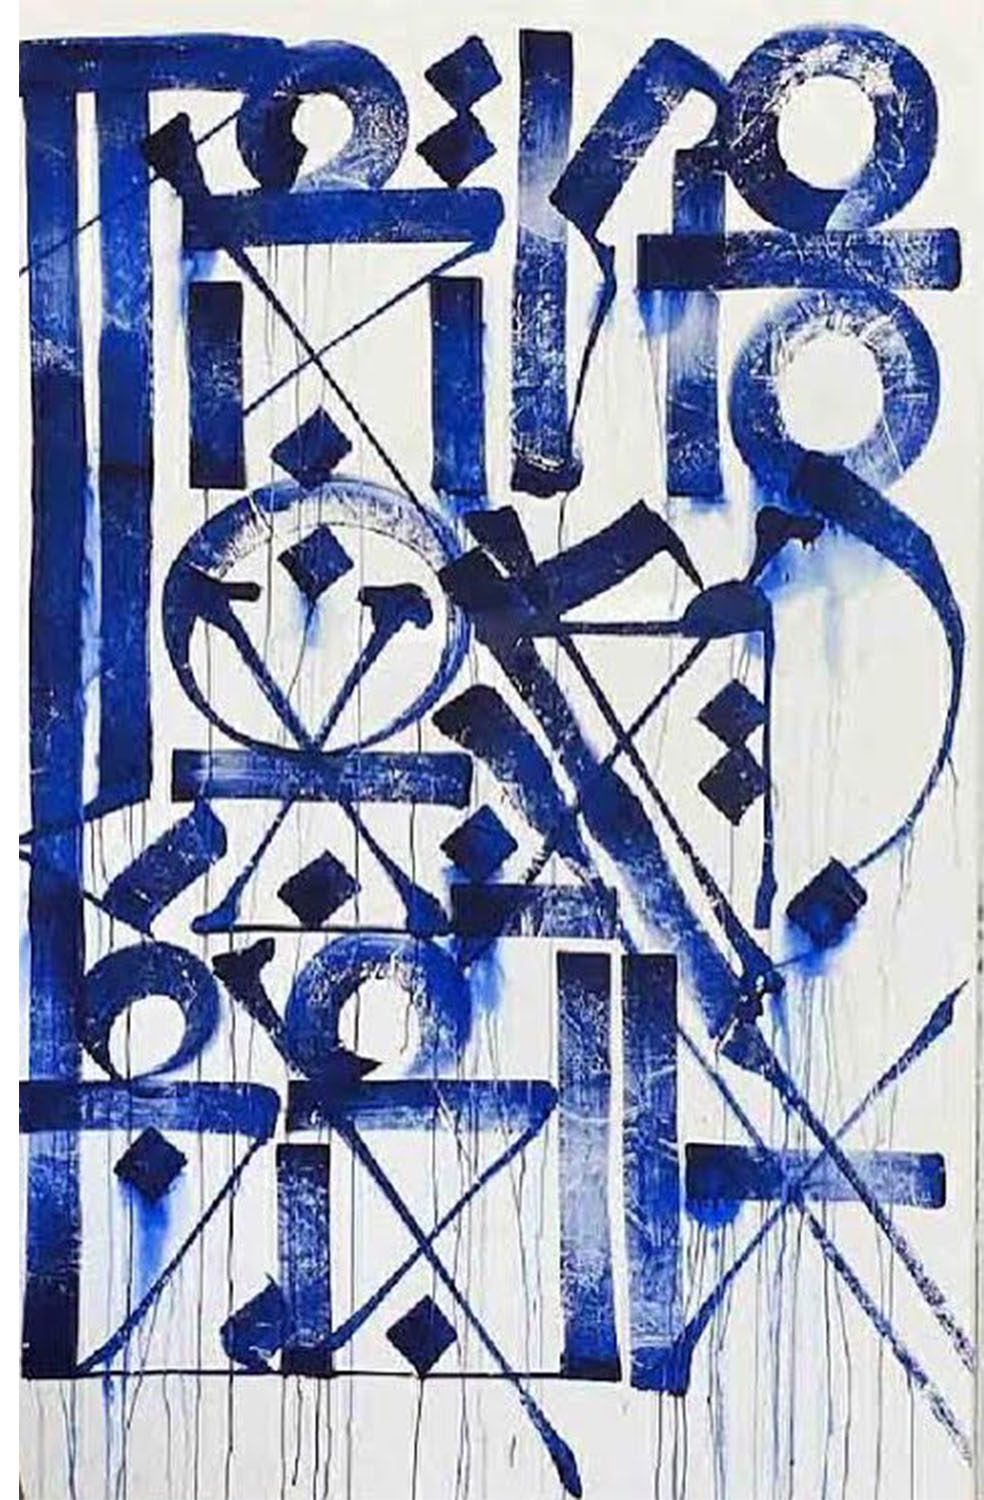 Graffiti art sale -  Retna Graphic Street Art Graffiti